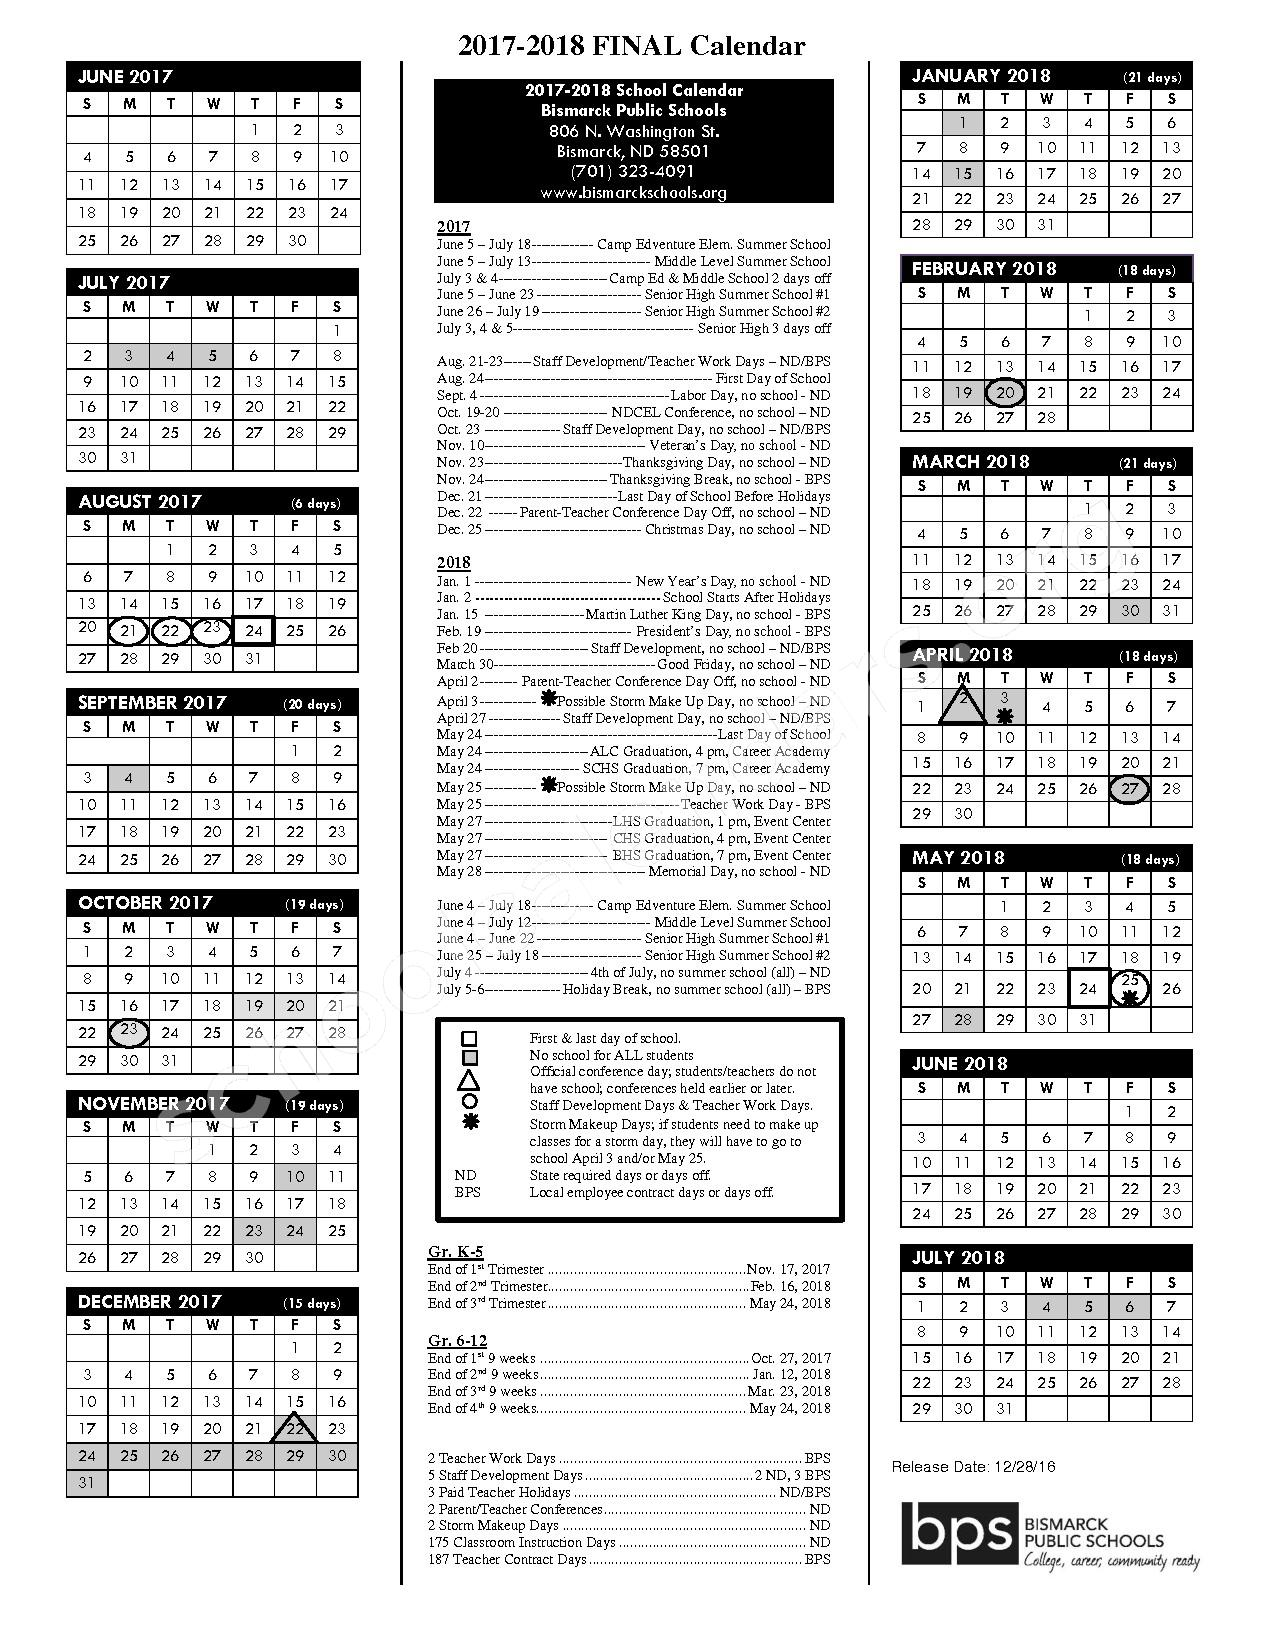 2017 - 2018 school calendar – South Central Alternative School – page 1